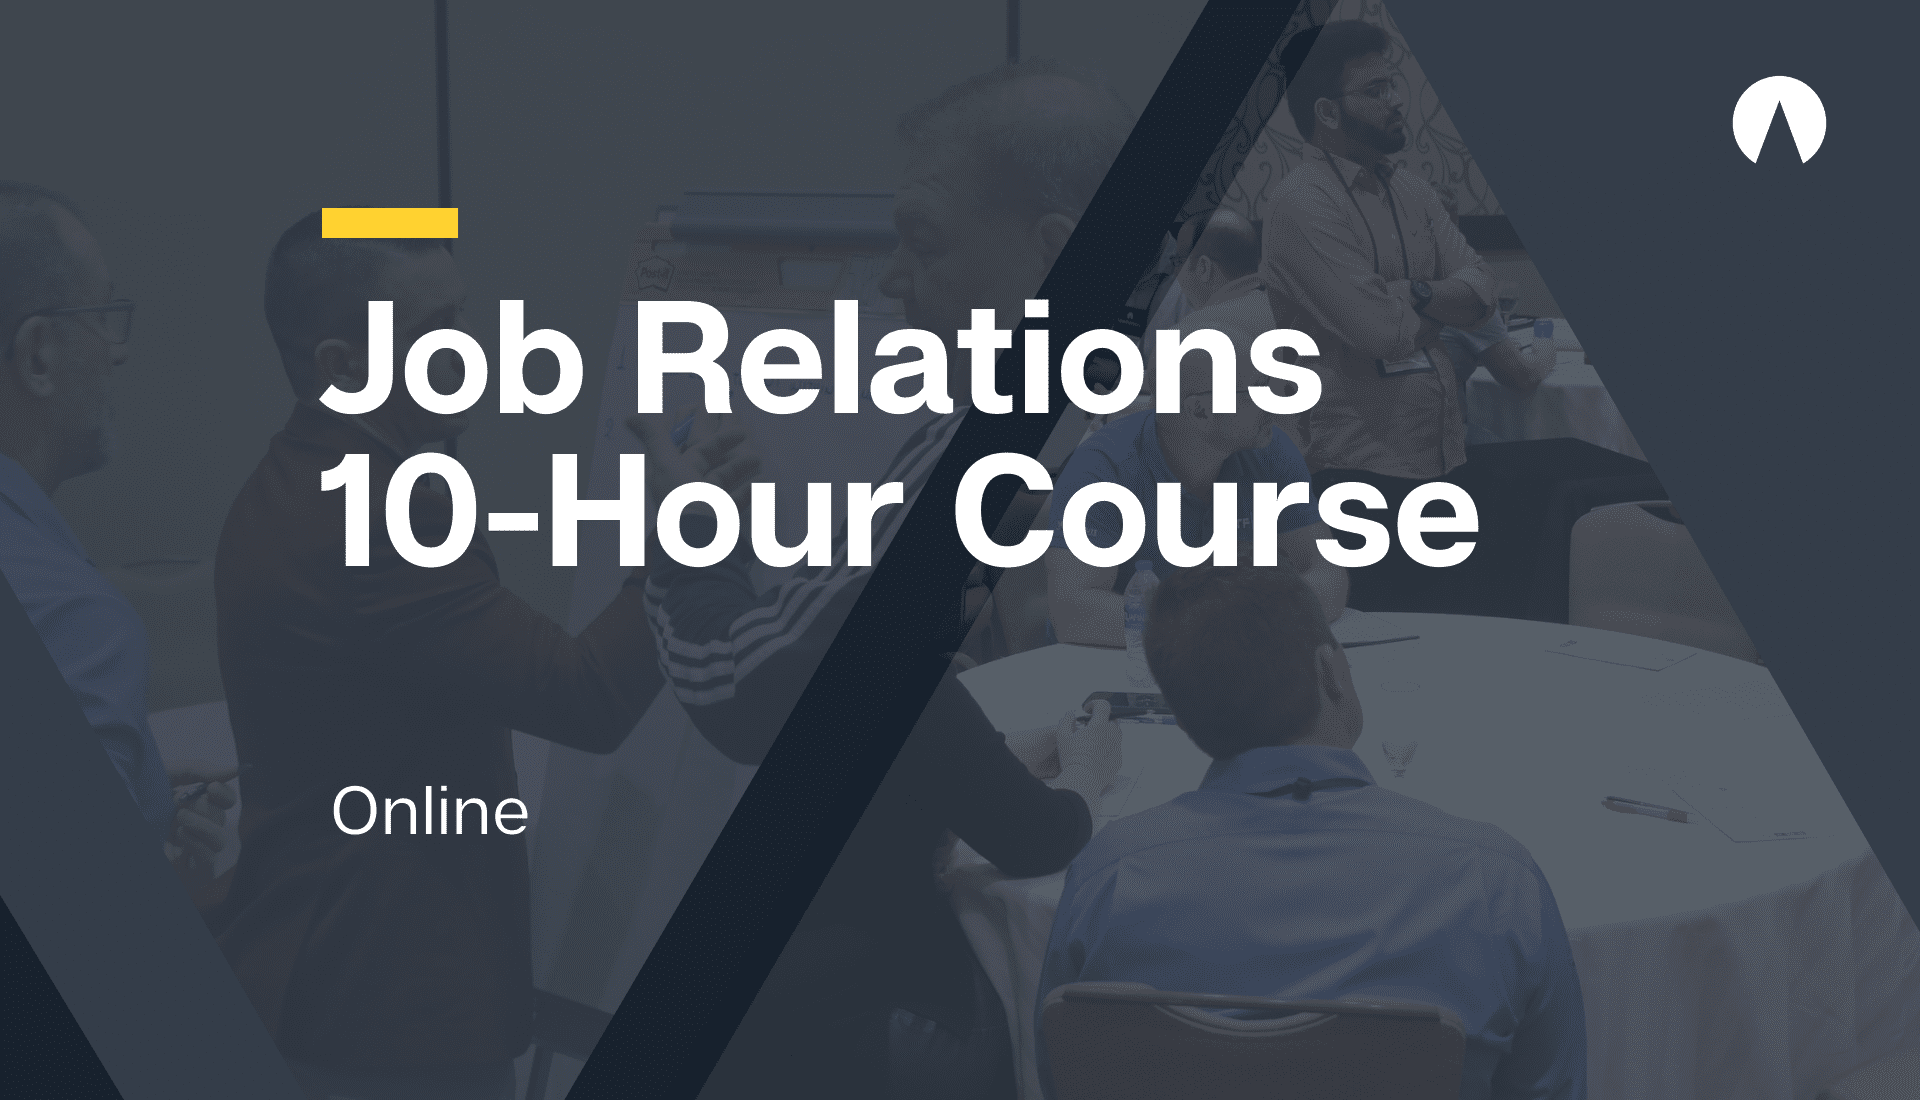 Job Relations 10-Hour Course